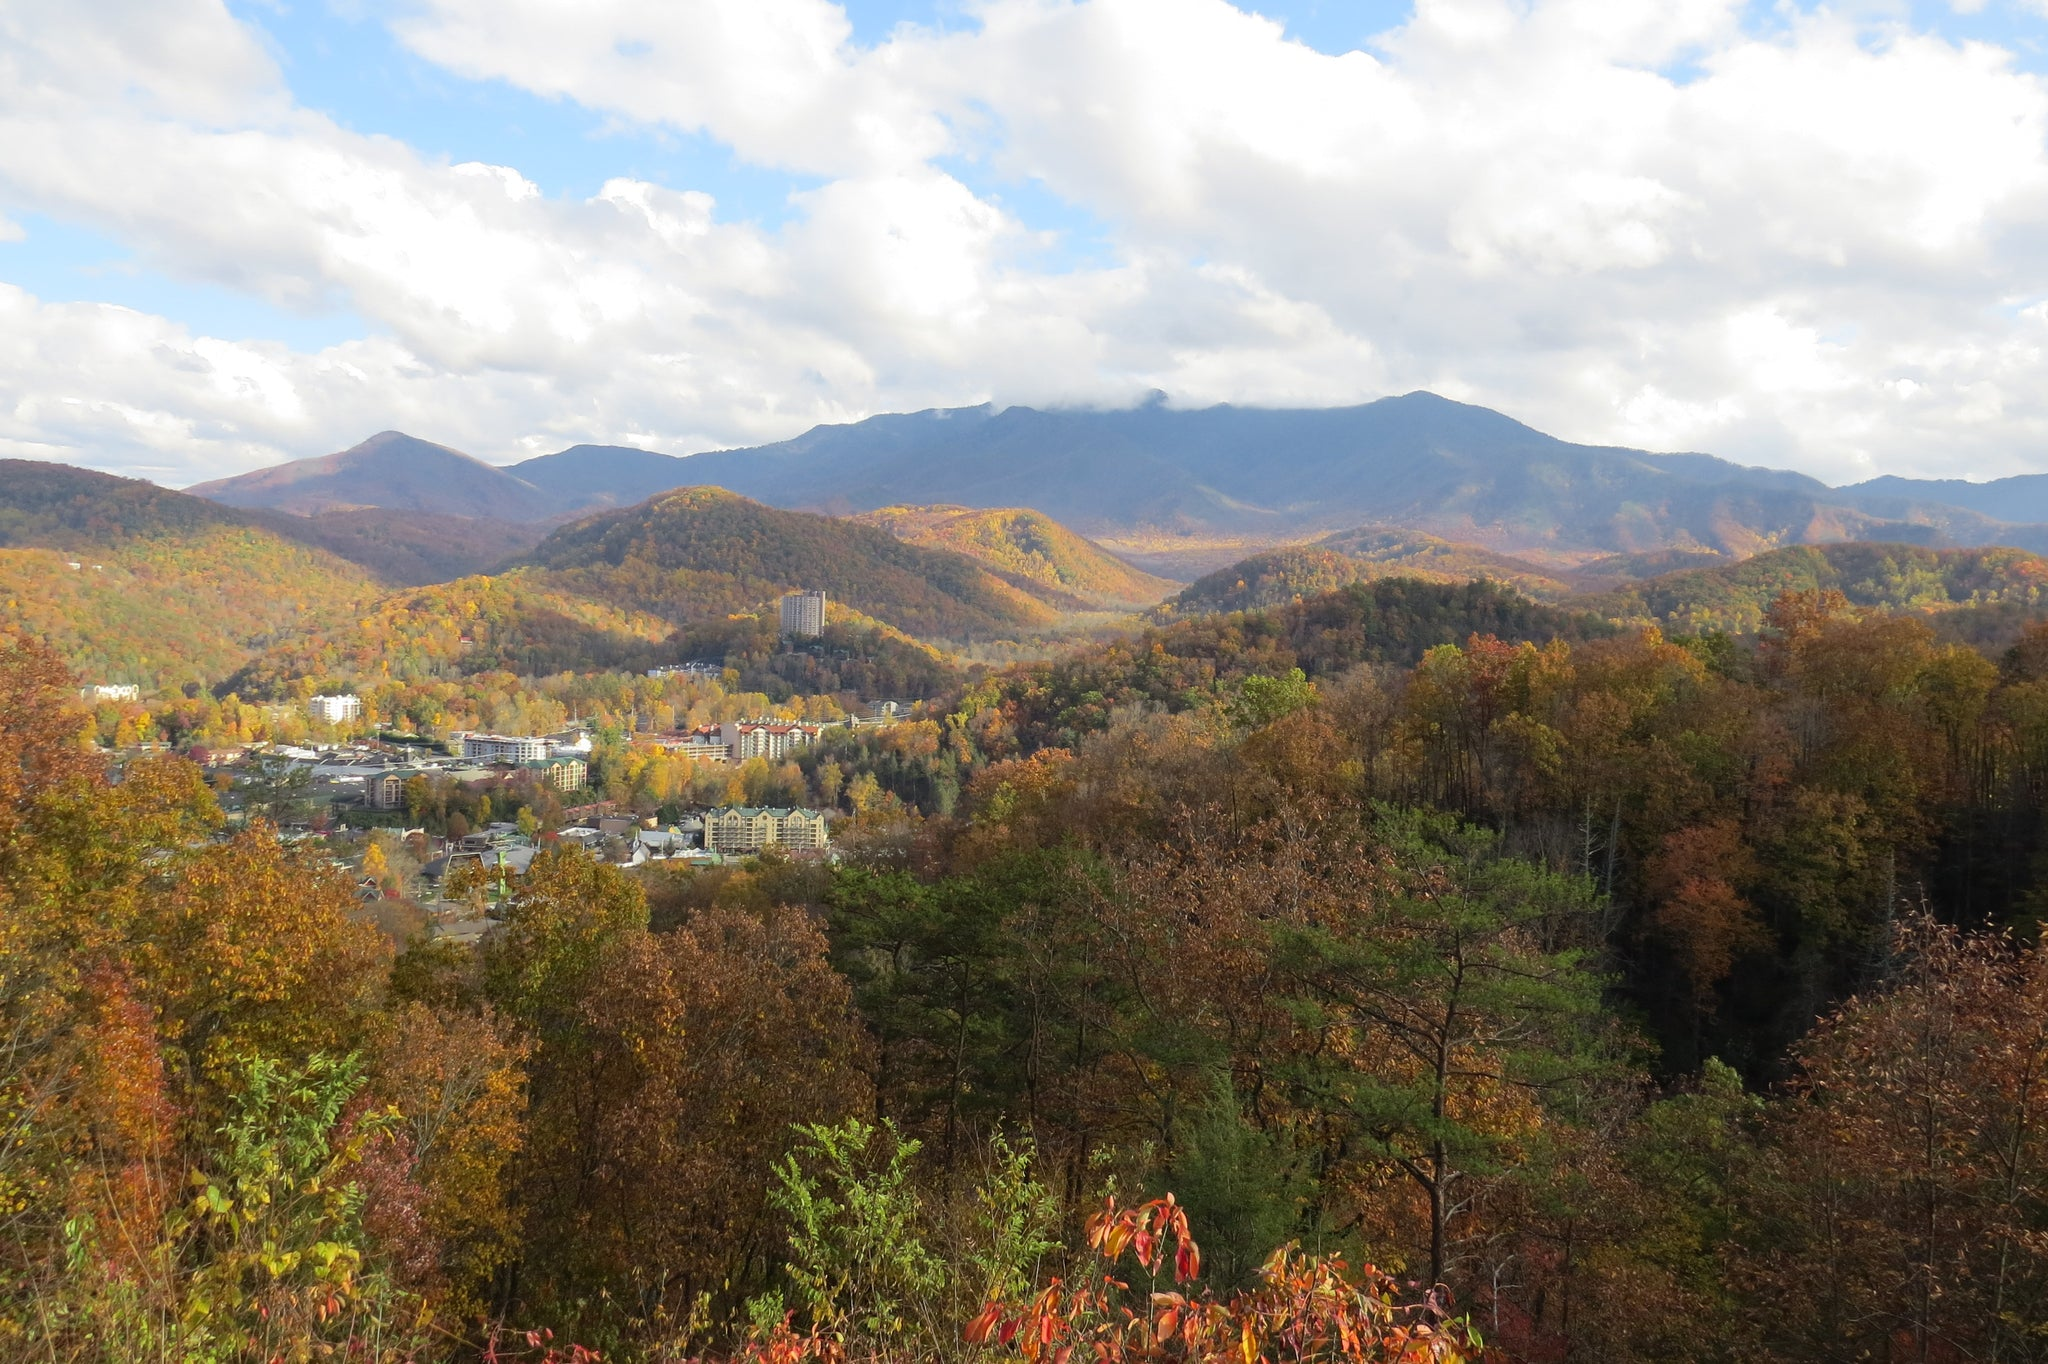 Gatlinburg in the valley below